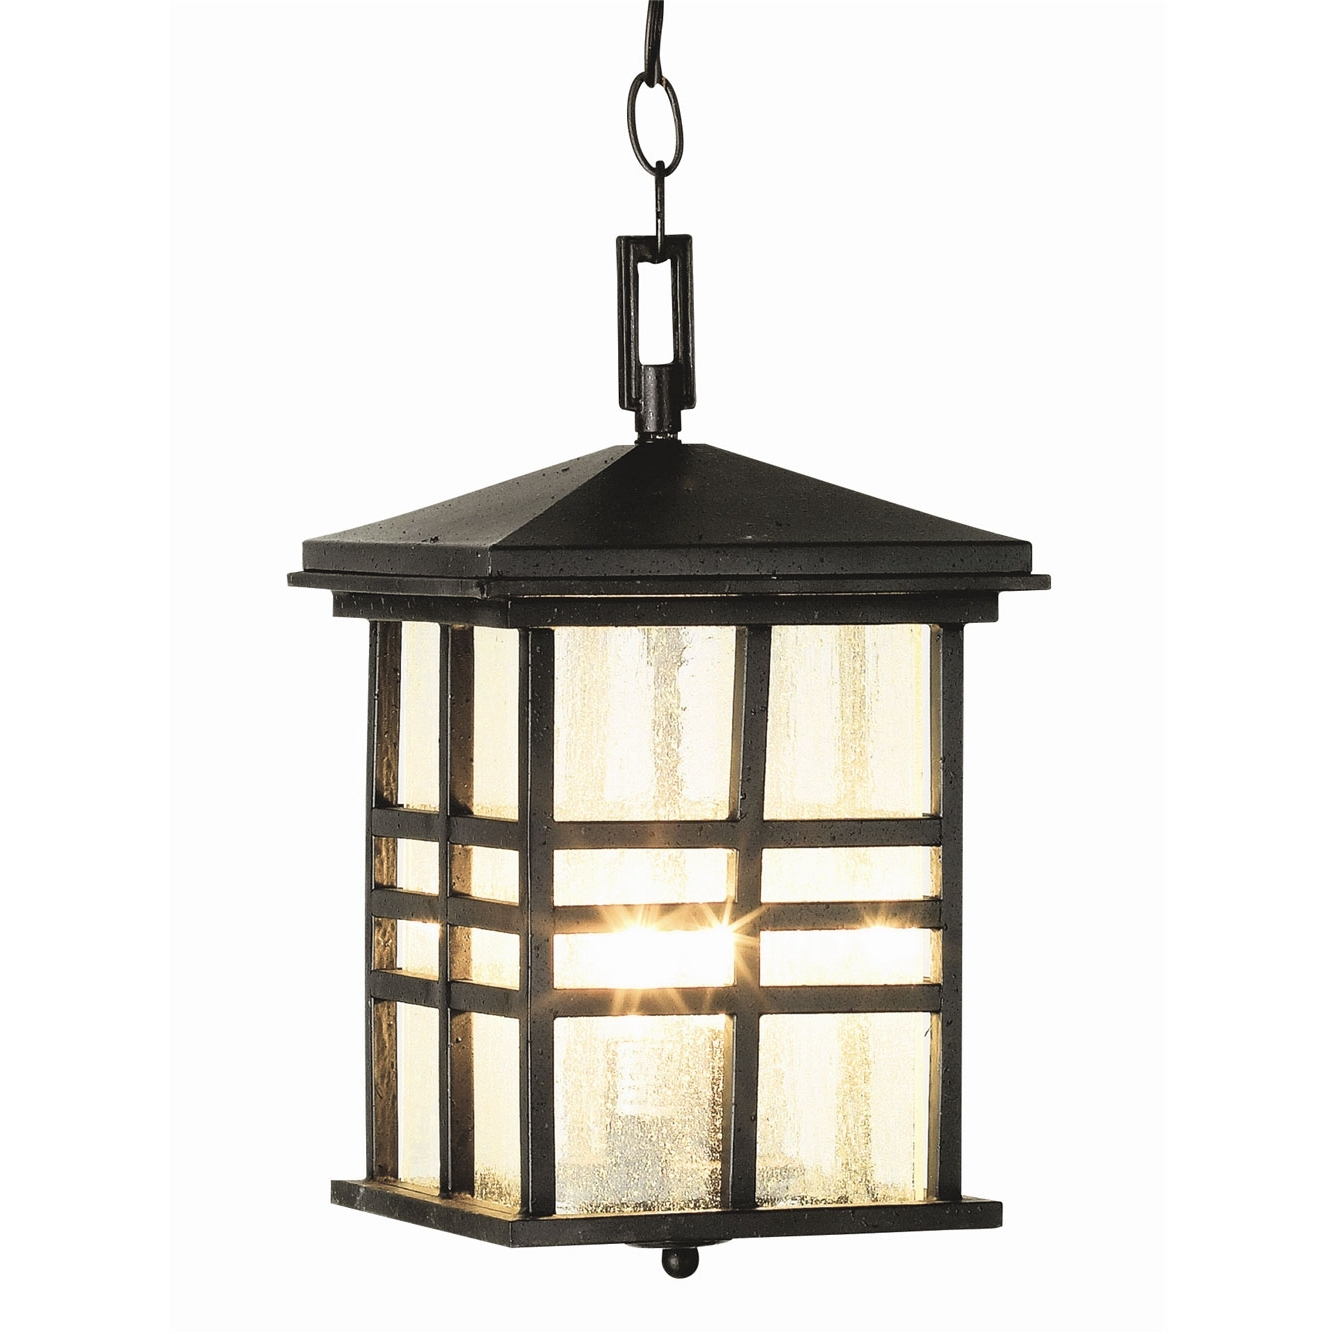 4638 Bk Throughout Preferred Outdoor Hanging Lanterns (View 1 of 20)